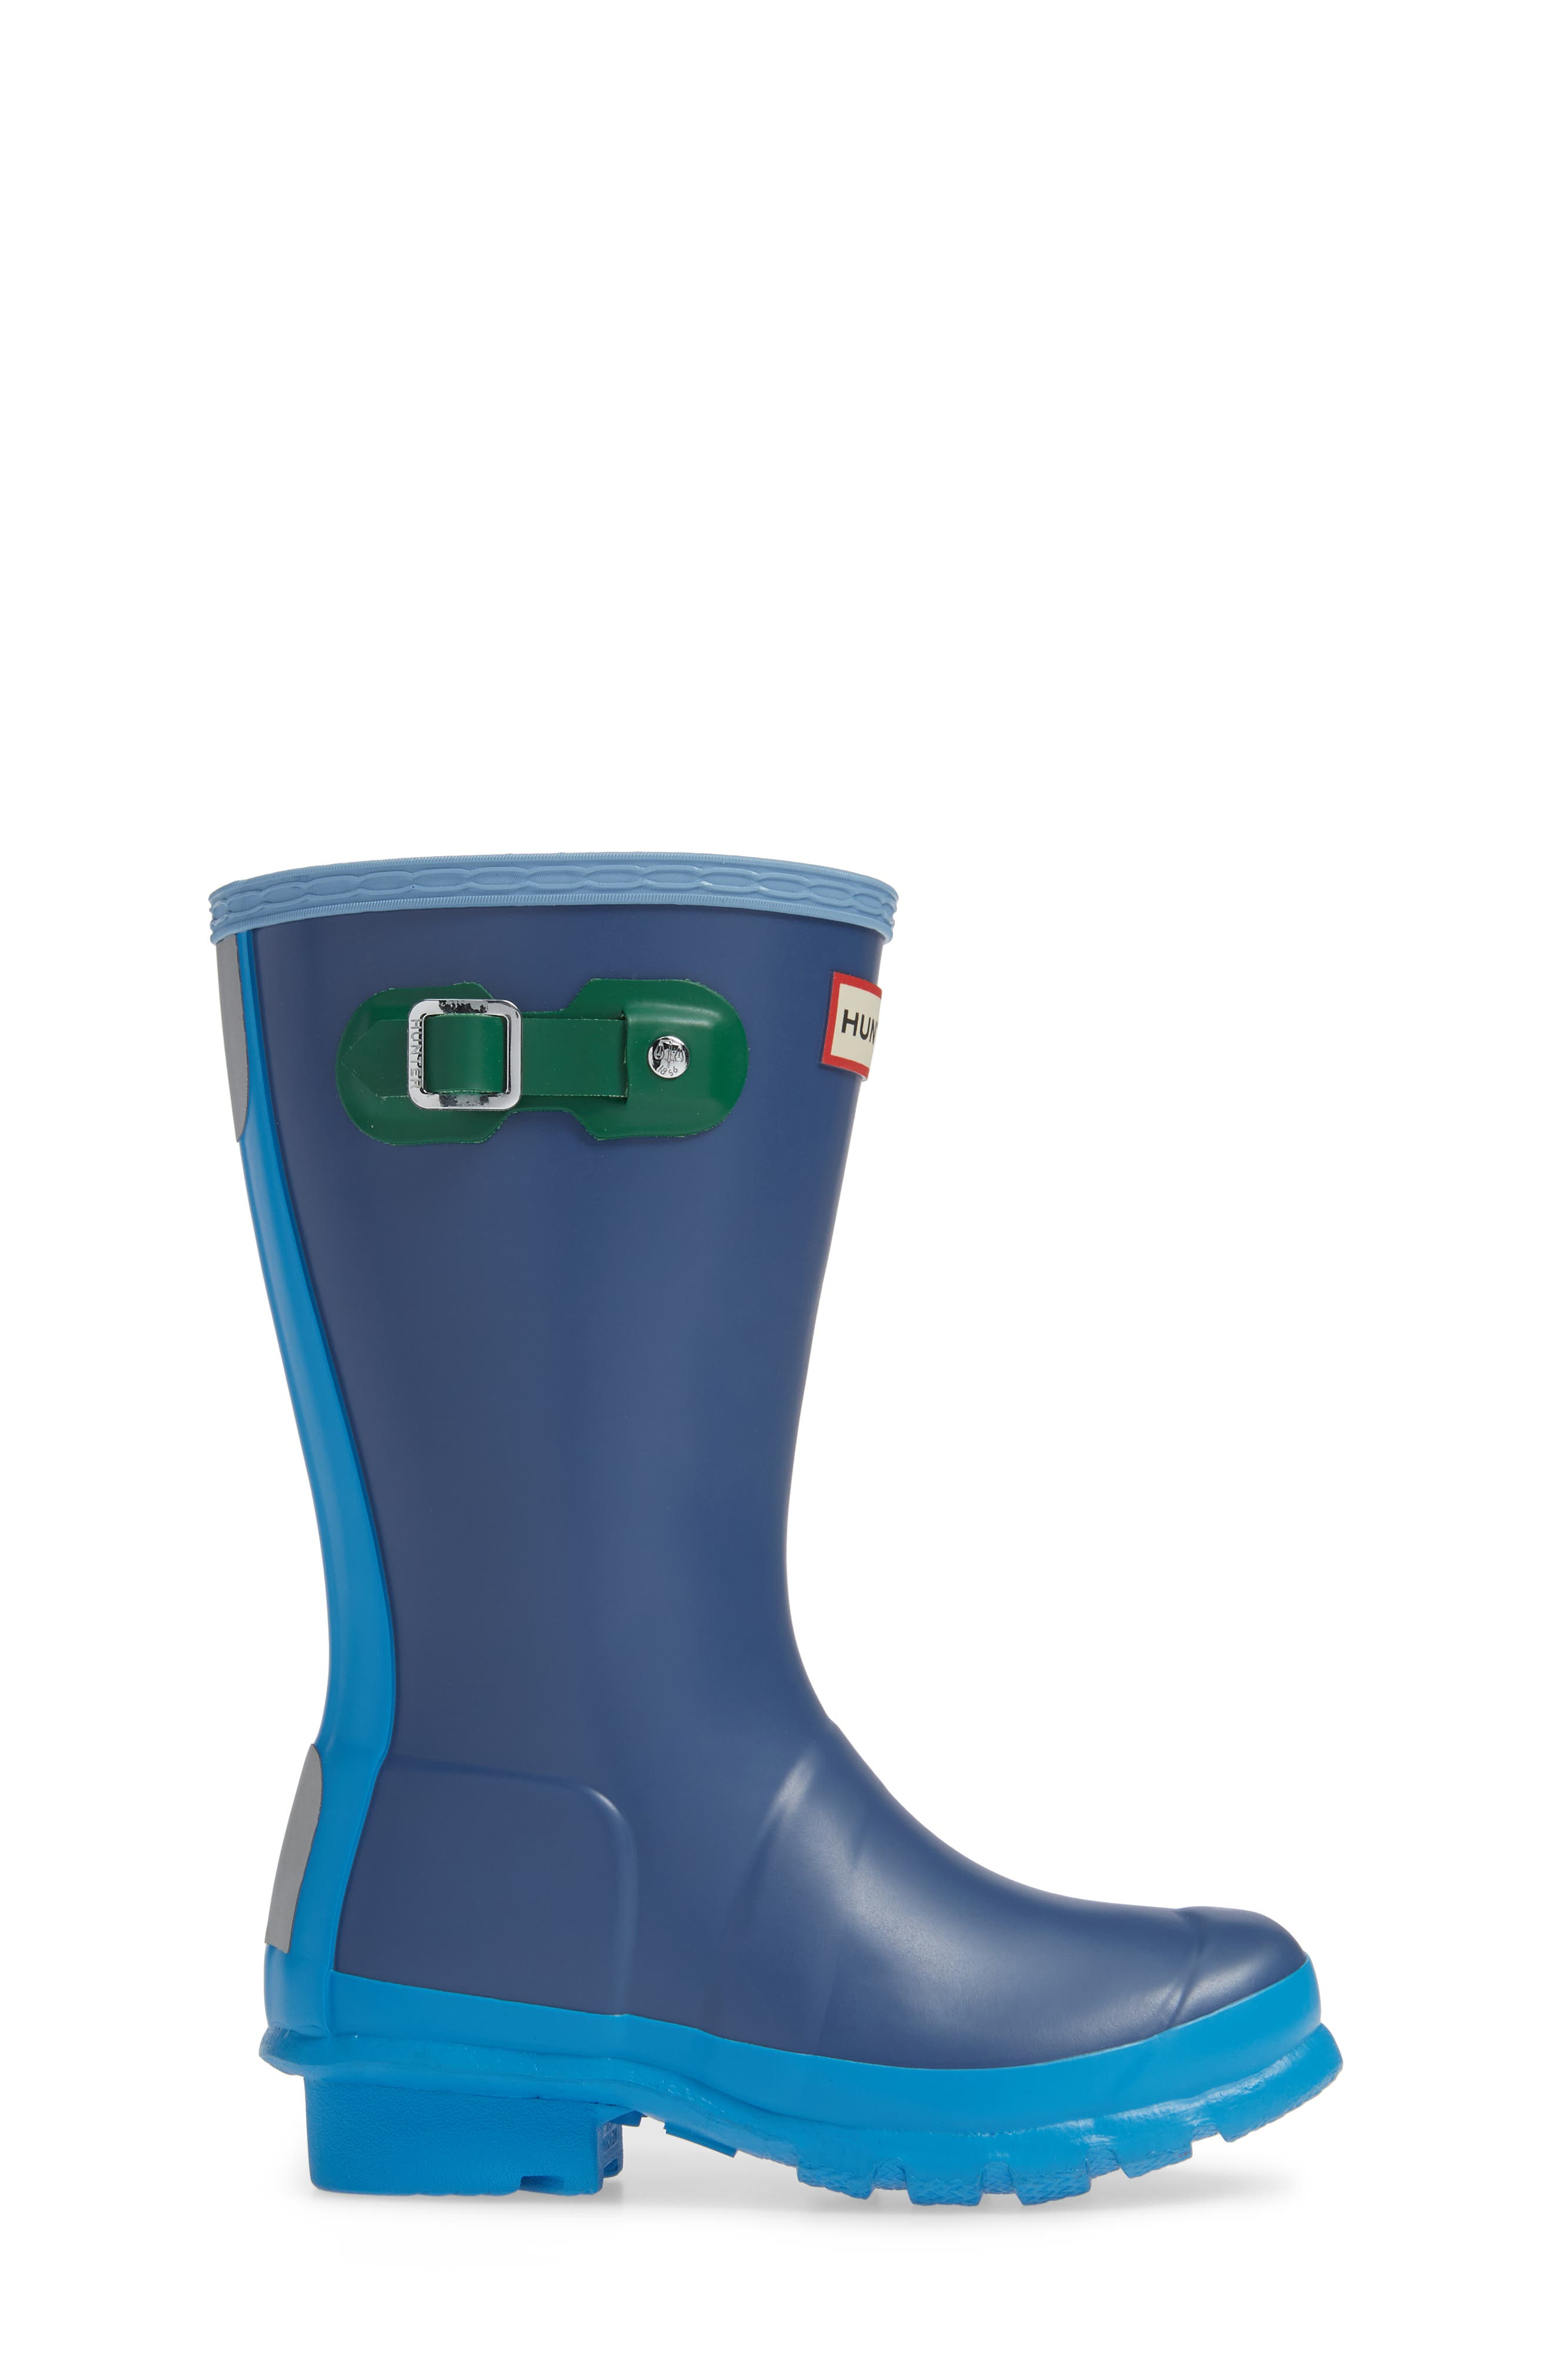 Original Colorblock Rain Boot,                             Alternate thumbnail 3, color,                             PEAK BLUE COLORBLOCK